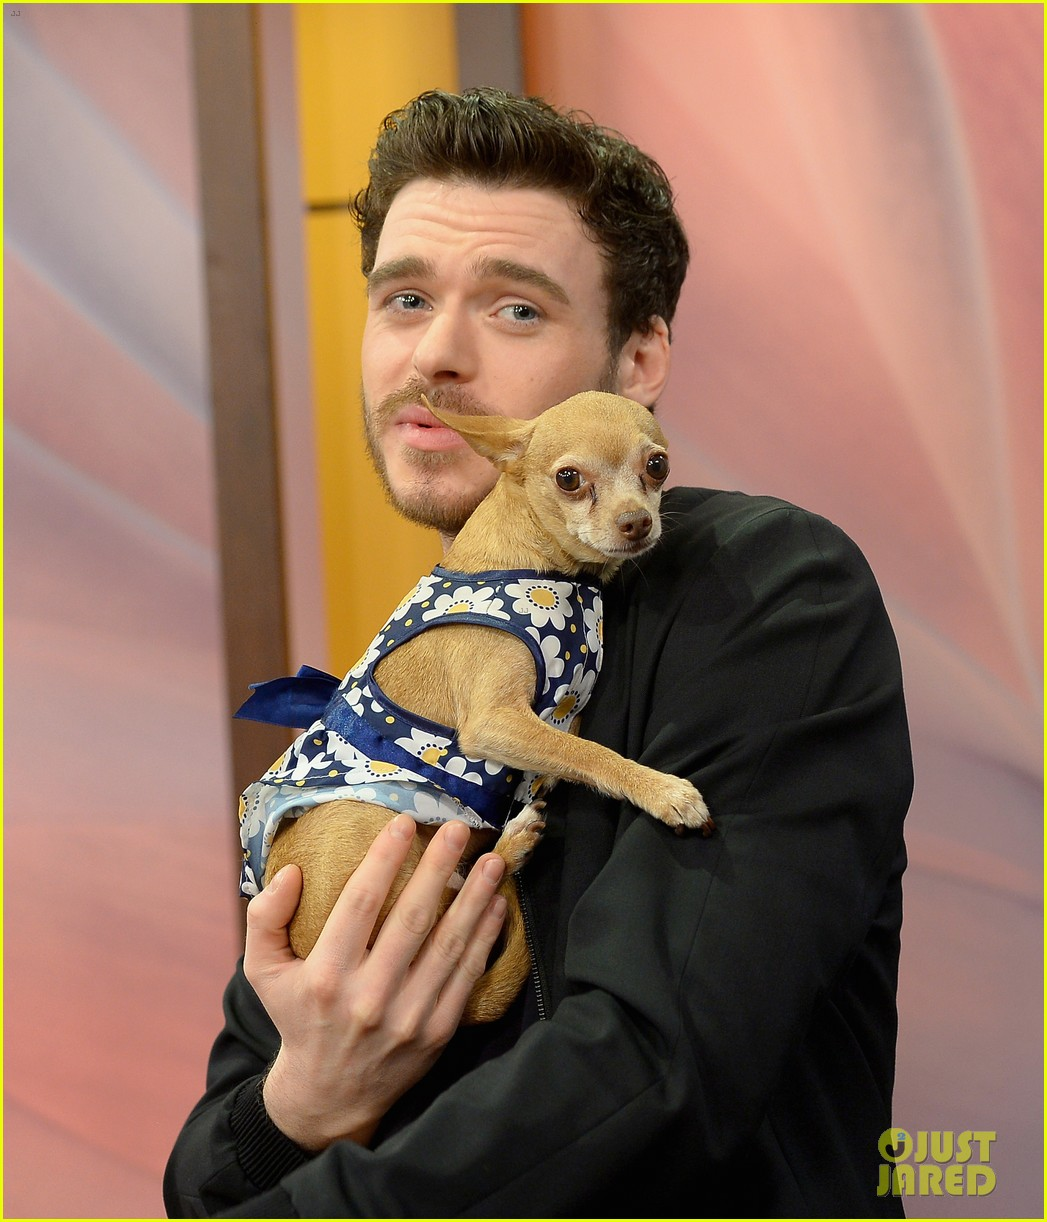 Cinderella S Richard Madden Charms Us With This Cute Puppy